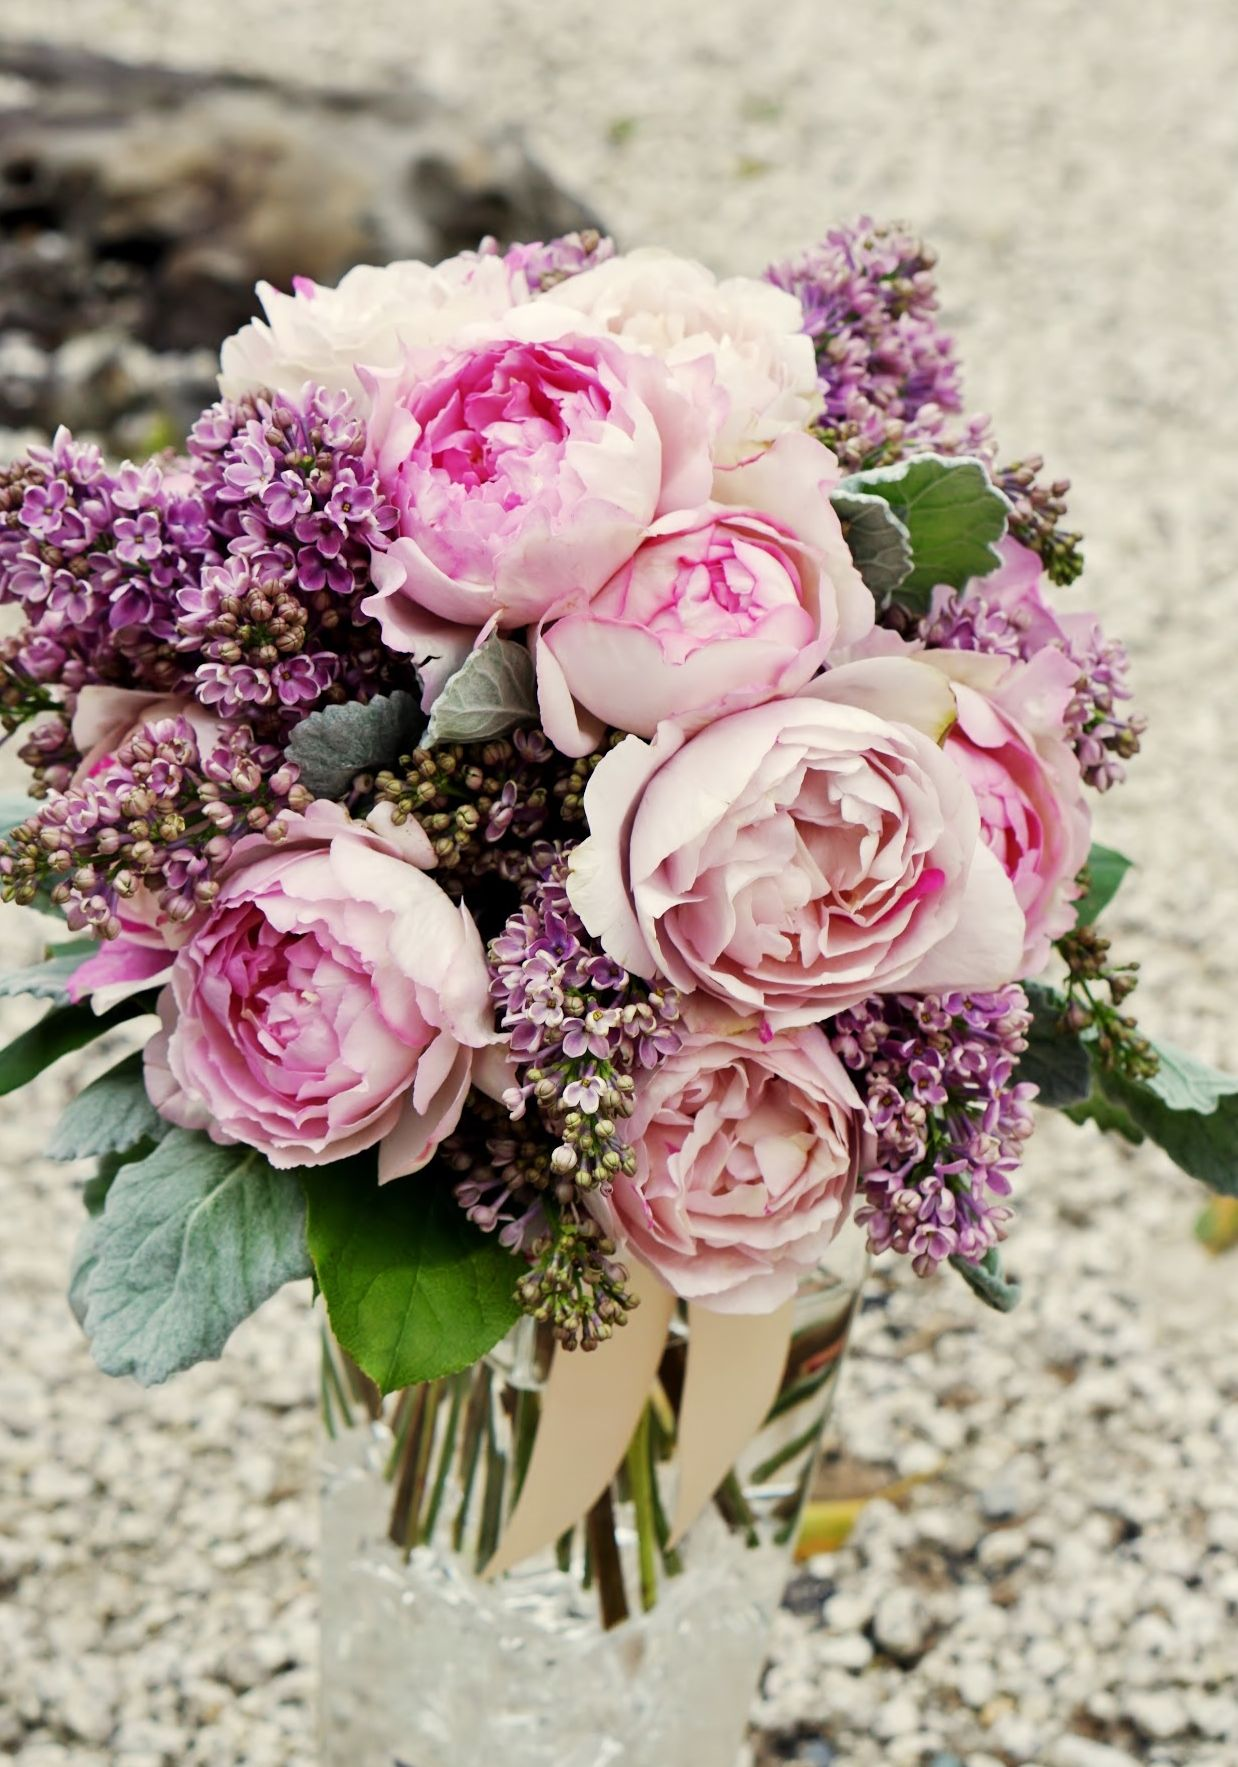 vressetRose #Wedding #girlychic#smokypink #bouquet #clutcfbouquet ...